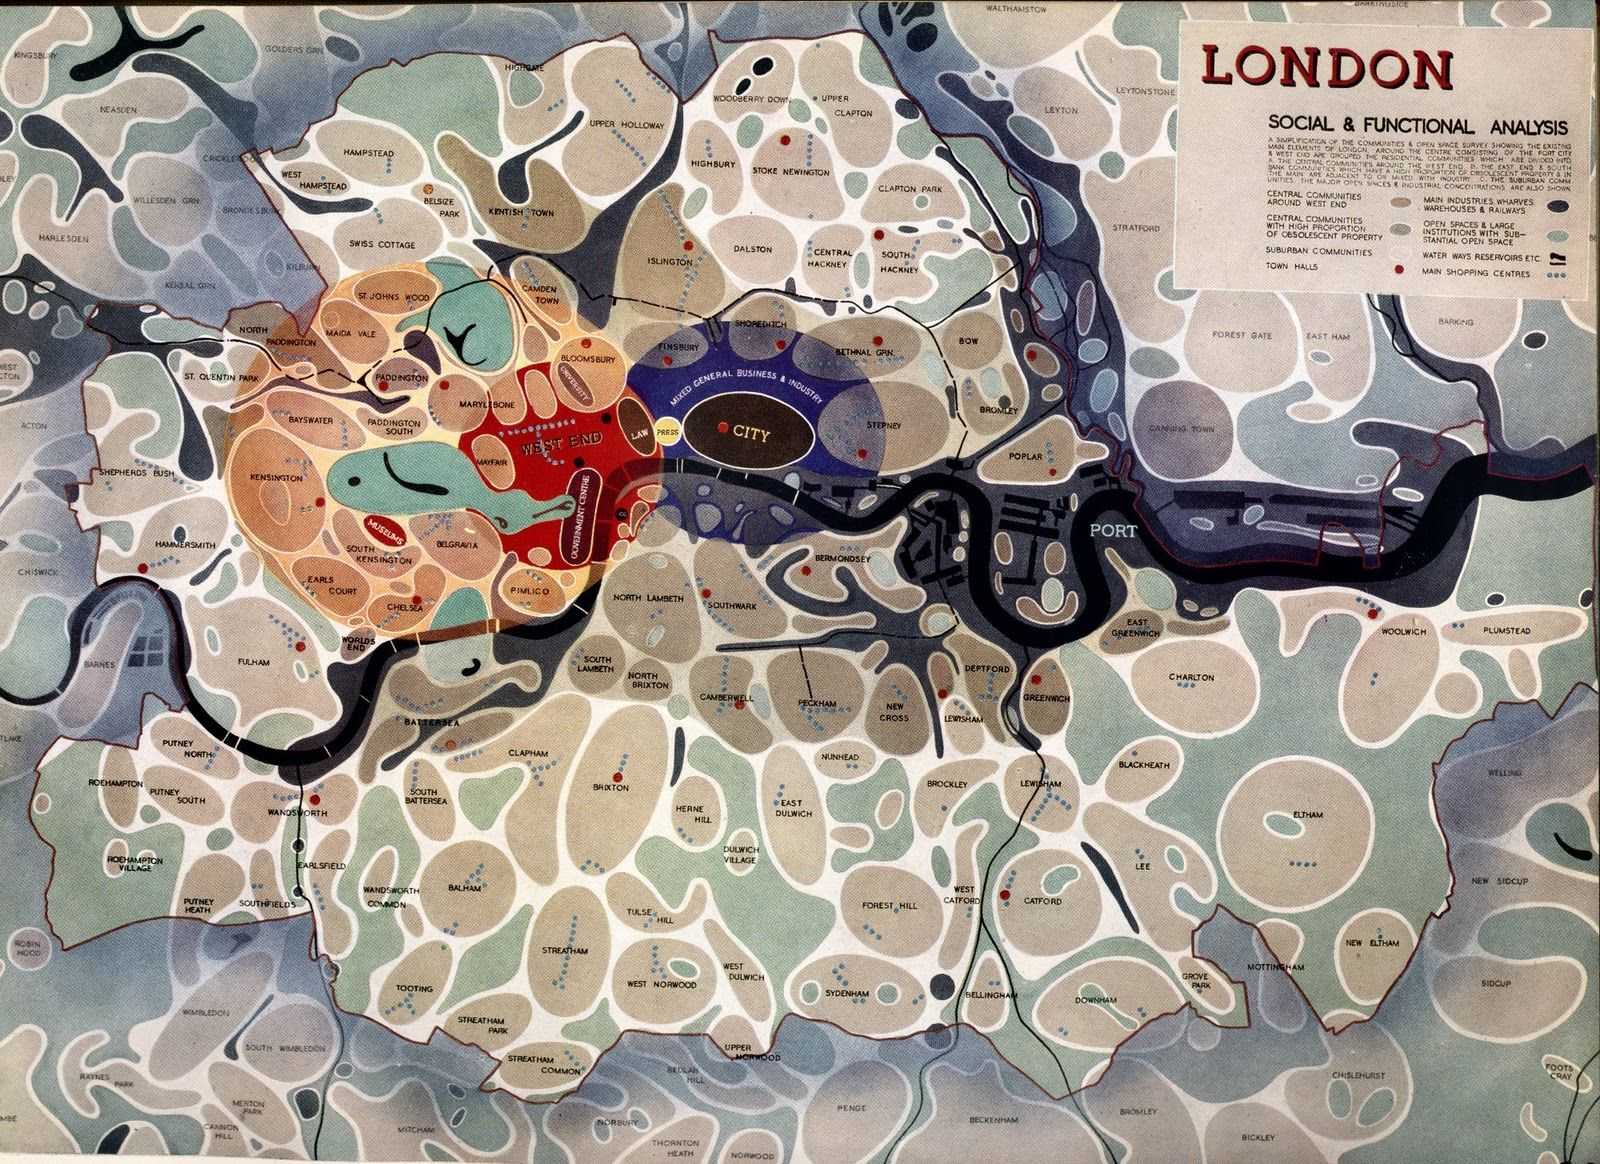 Map Of London 1600.Social And Functional Map Of London From The 40s 1600 1164